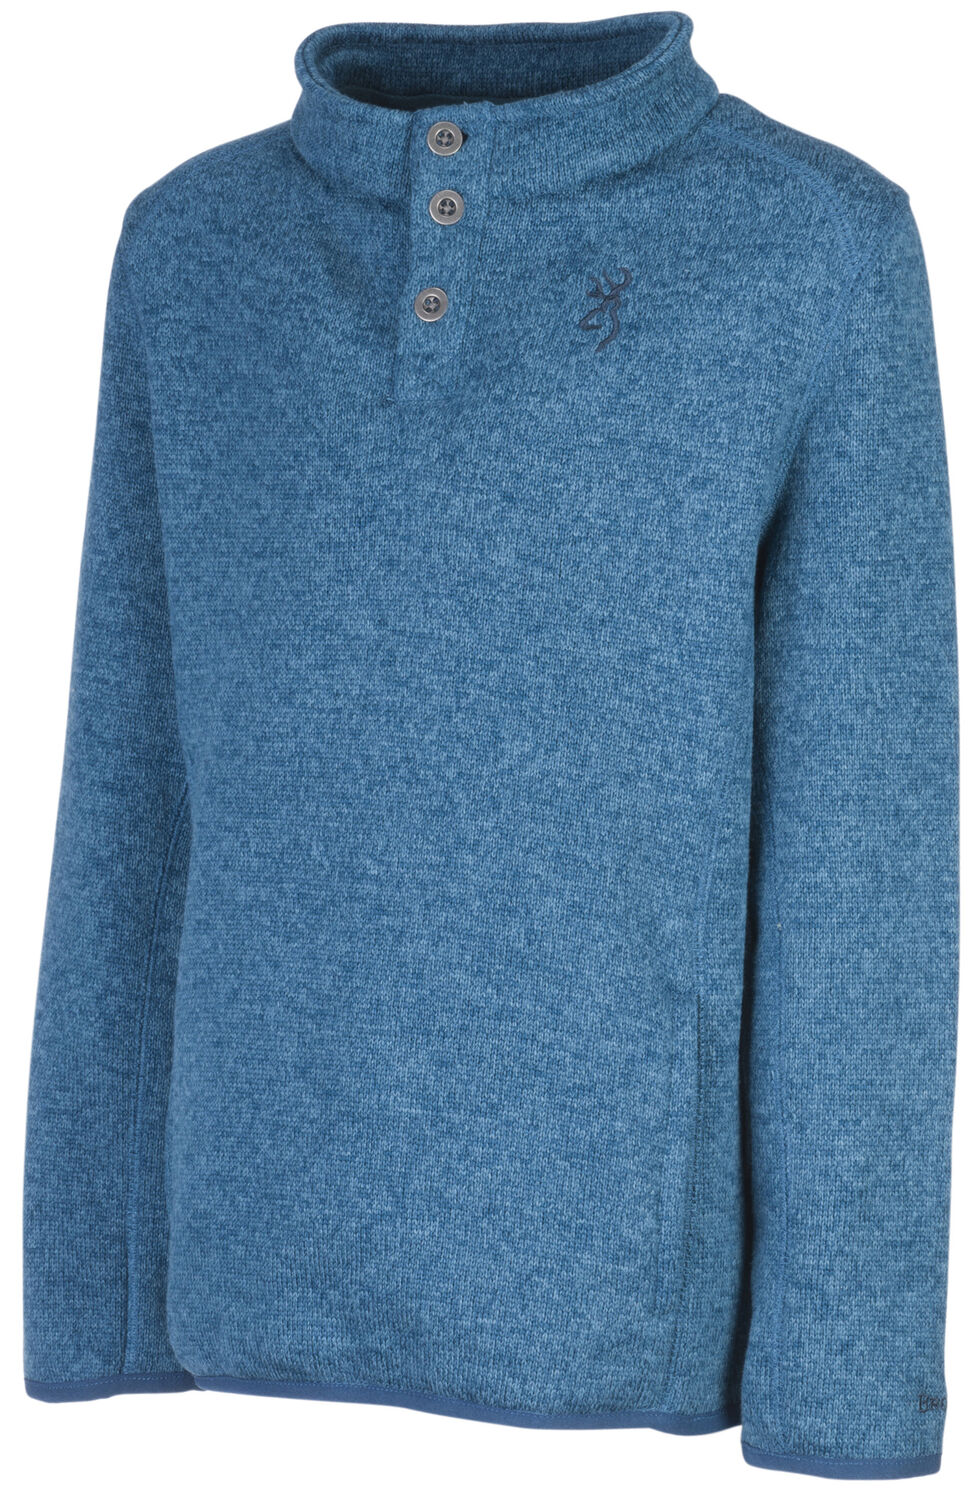 Browning Boys' Blue Gilson Sweater, Blue, hi-res